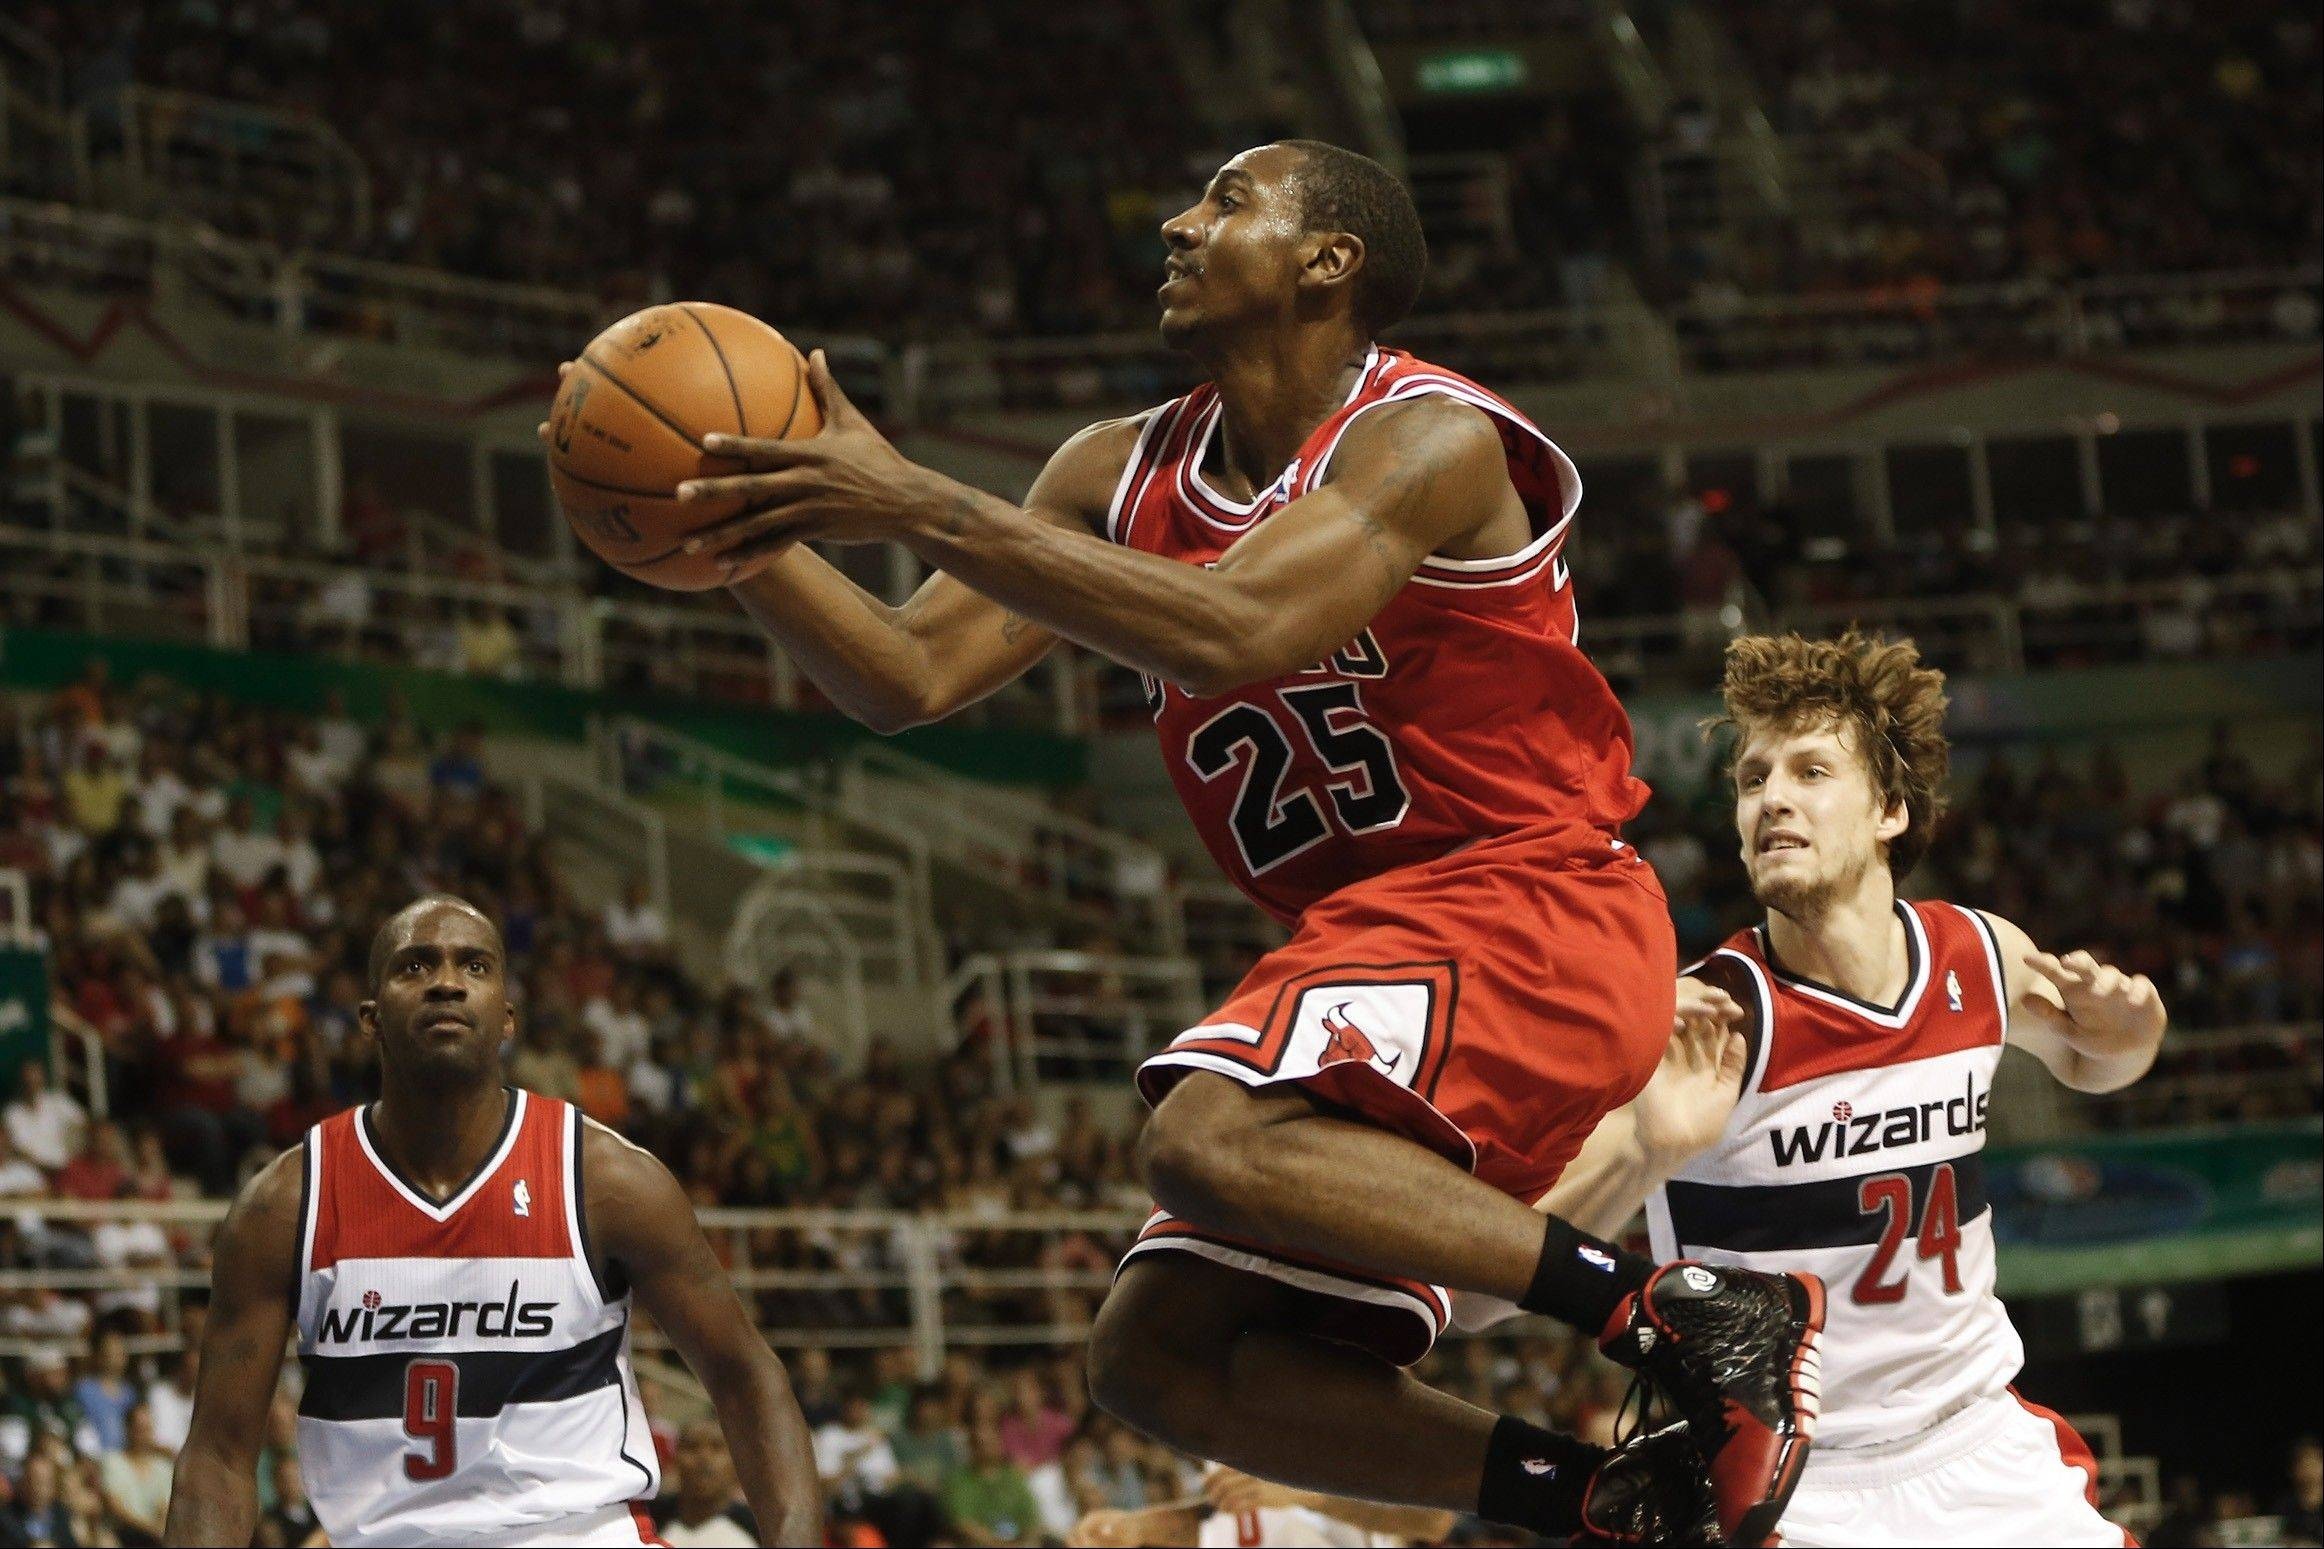 The Bulls' Marquis Teague, center, makes a move to the basket as Washington Wizards' Martell Webster, left, and Jan Vesely look on during the first half of an NBA preseason basketball game in Rio de Janeiro, Brazil, Saturday.